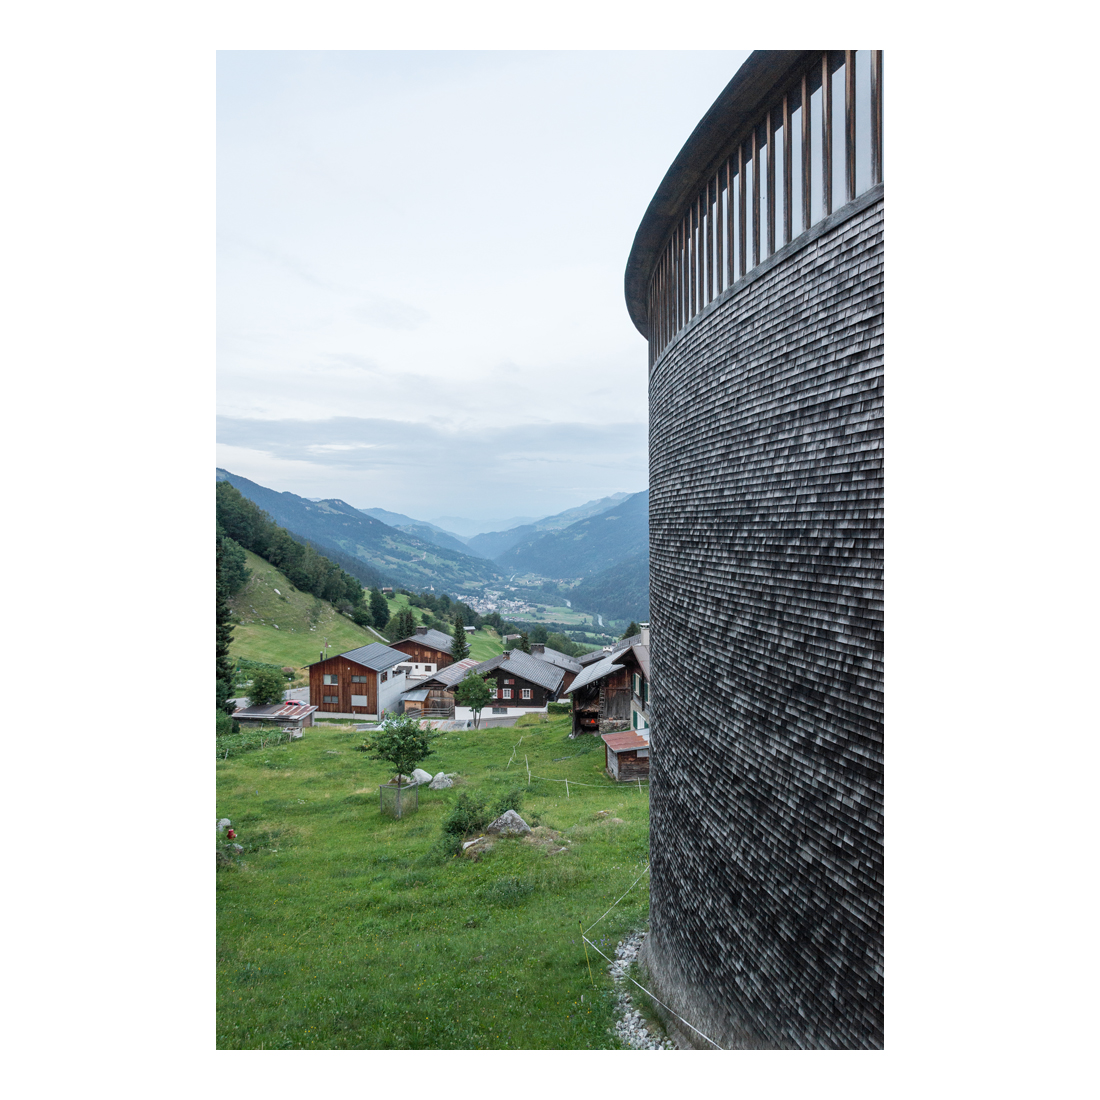 PeterZumthor_Kapel3_©JasonSlabbynck